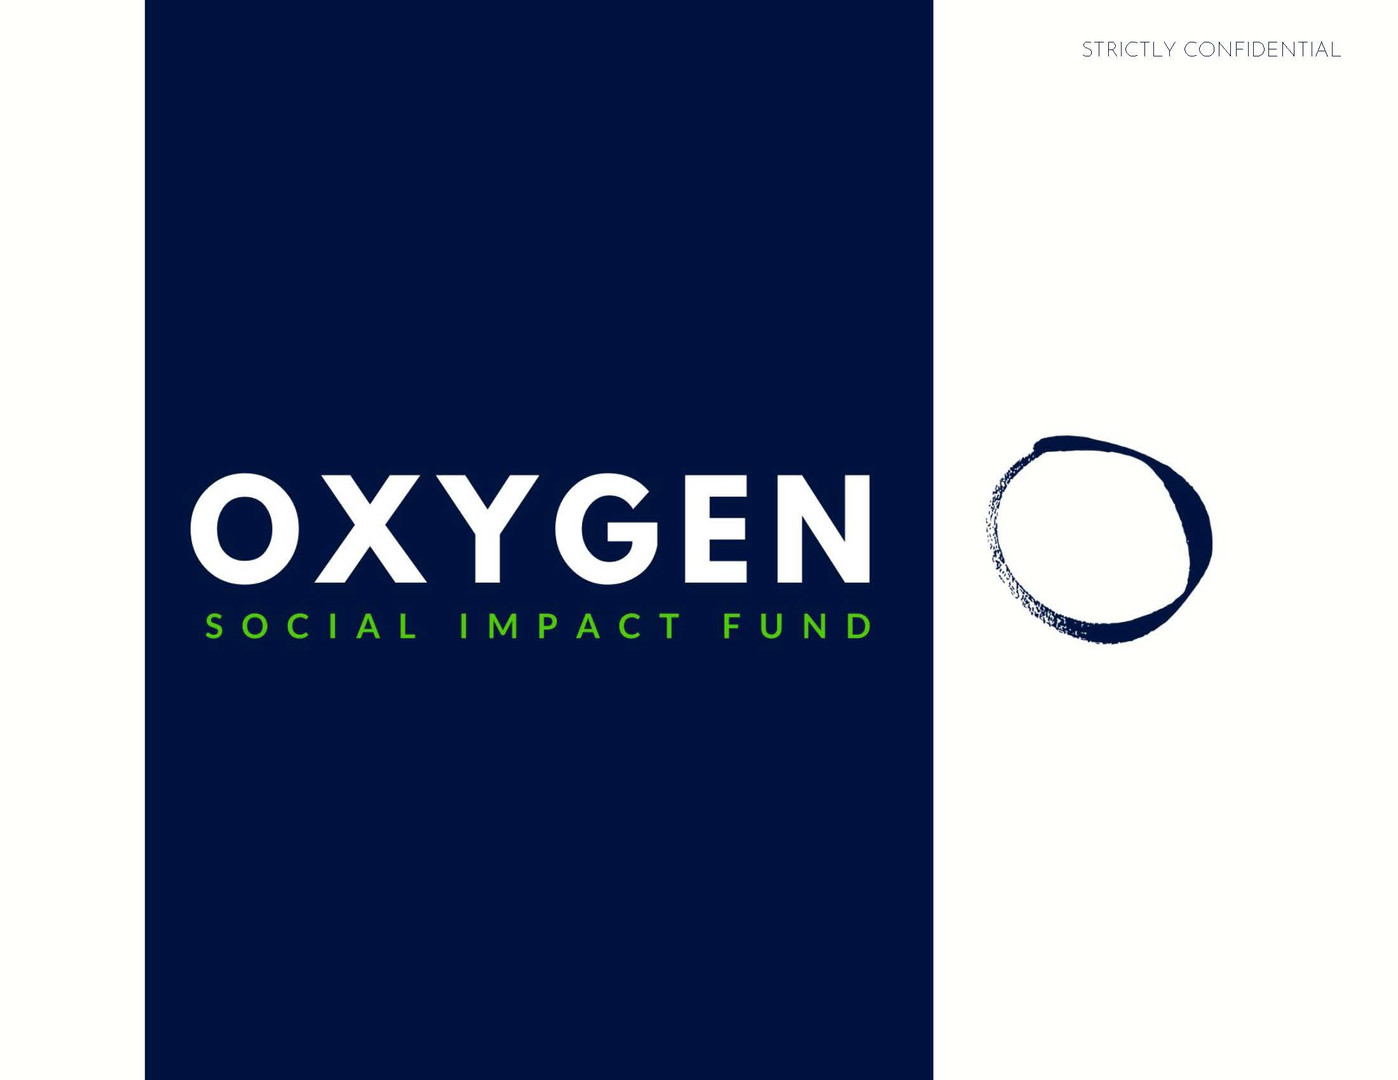 NEW_The Oxygen Fund2_Page_19.jpg